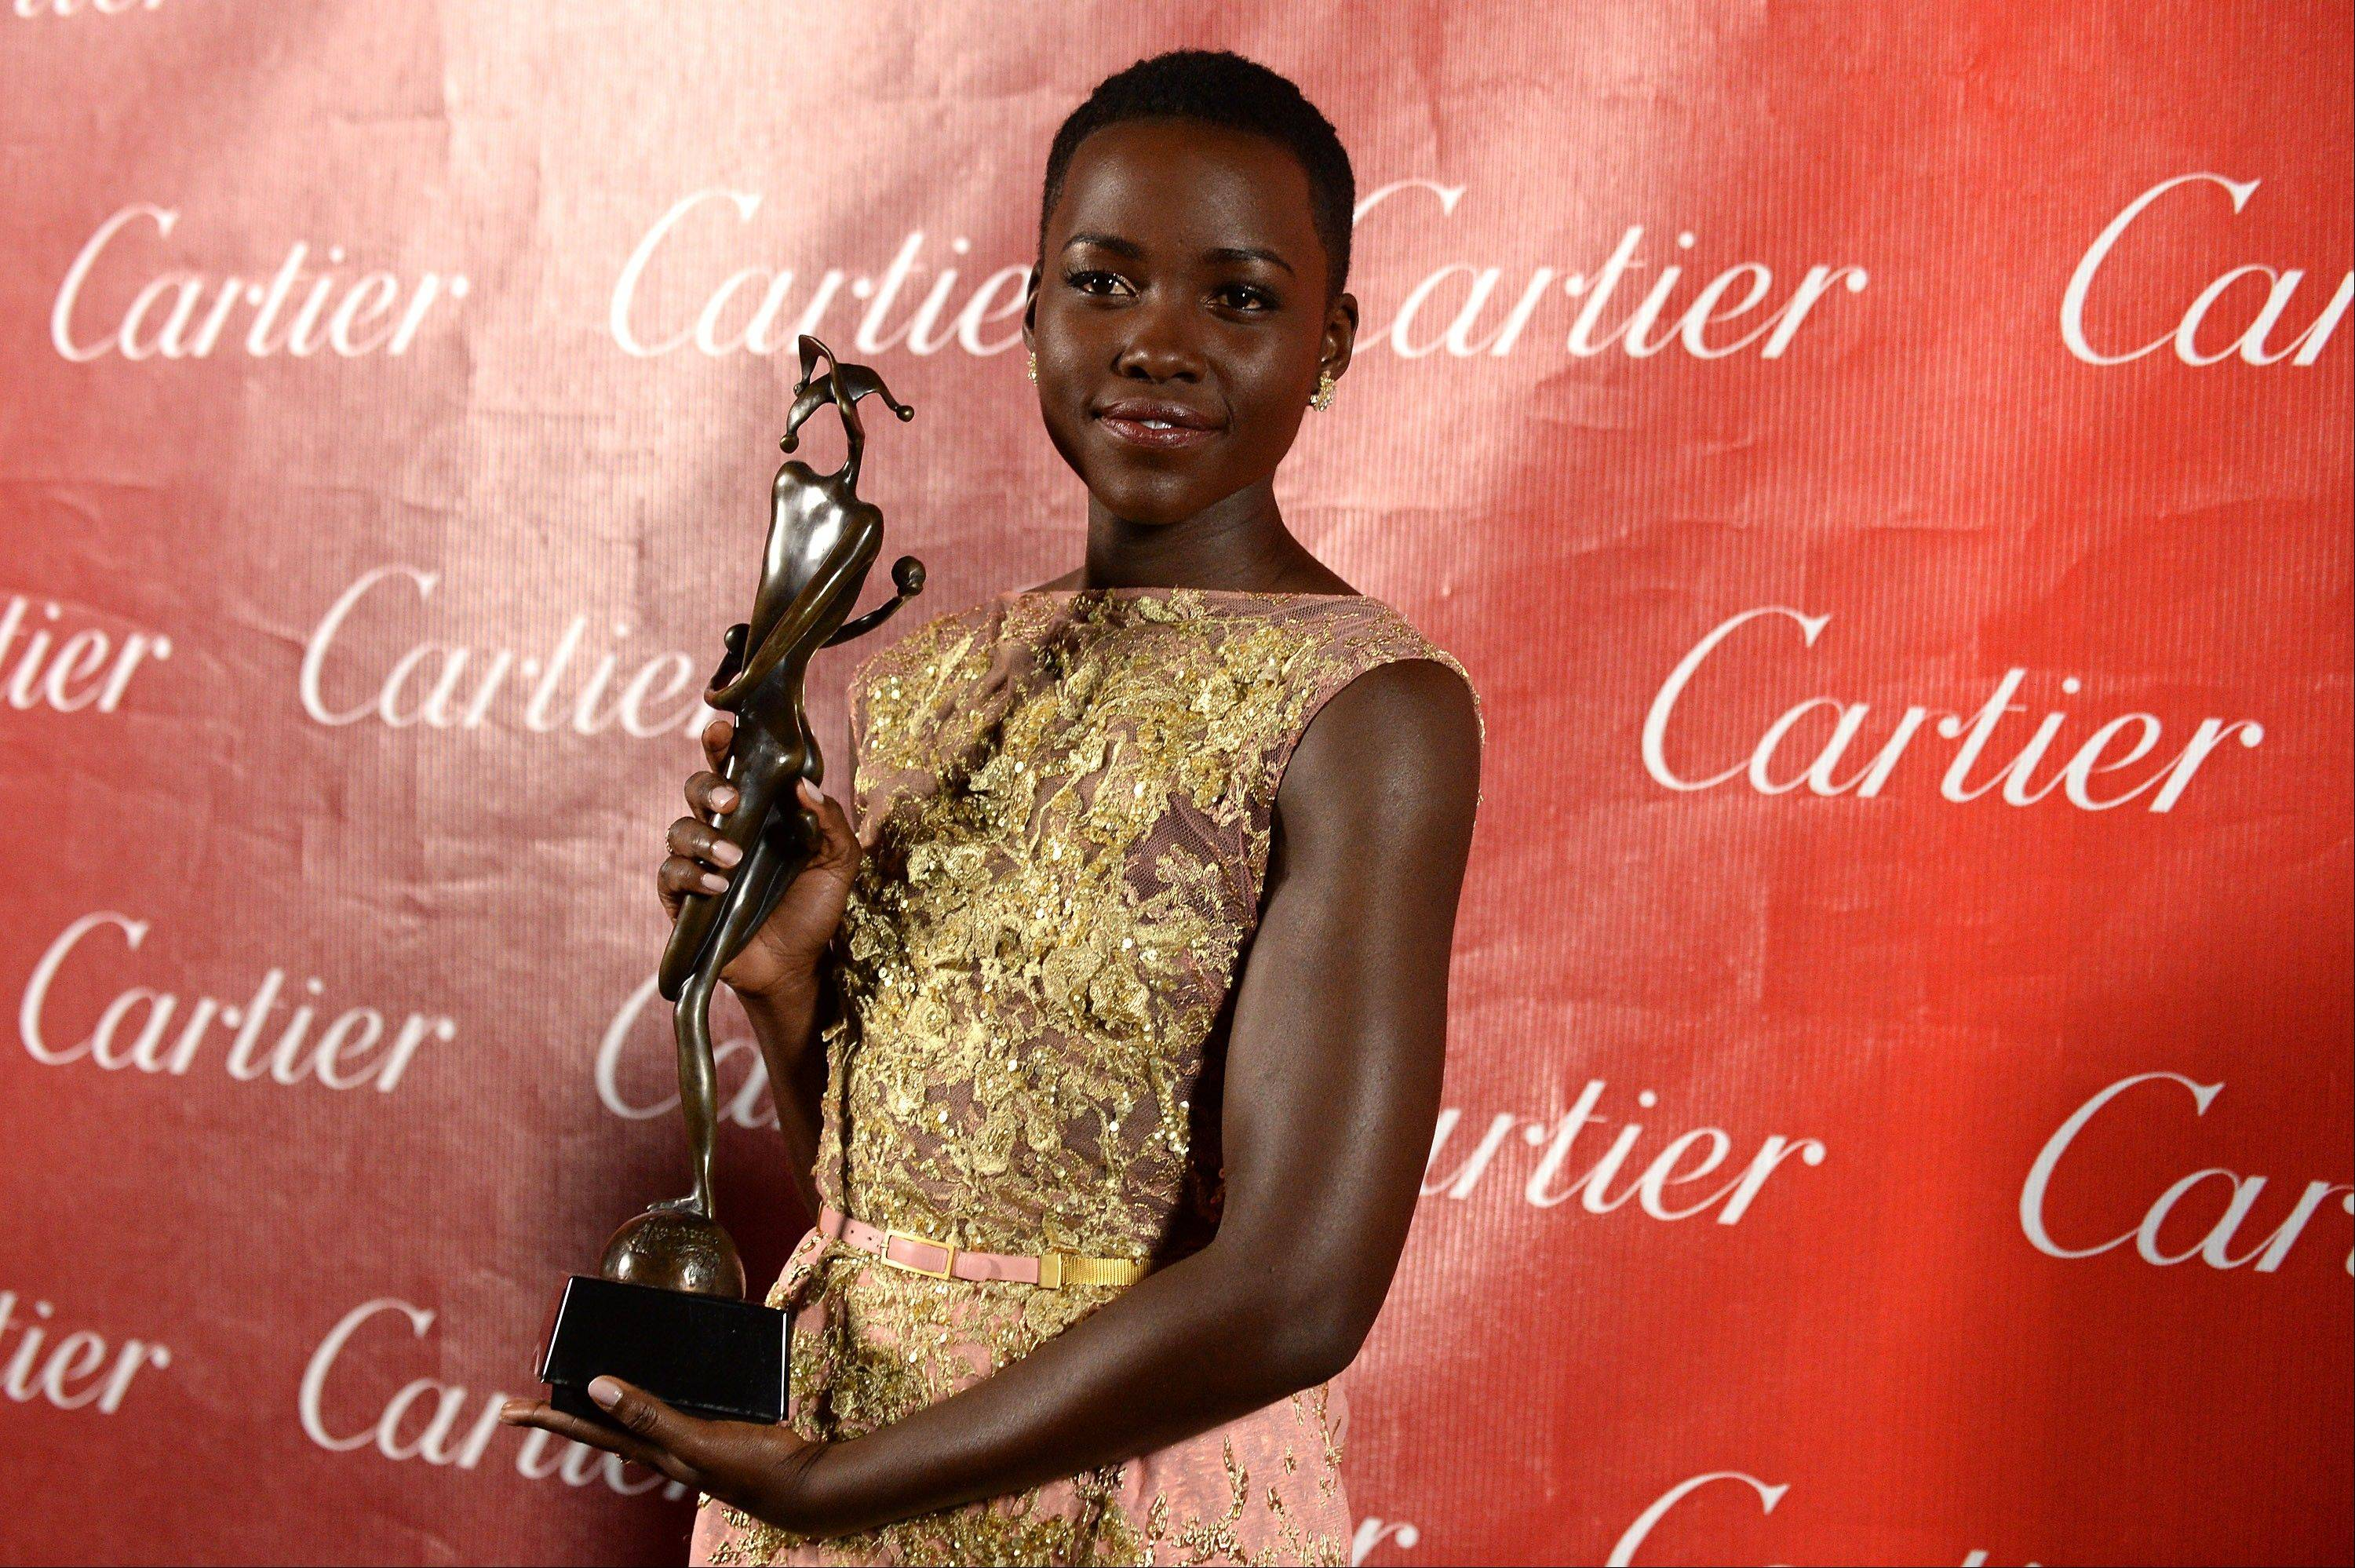 Lupita Nyong'o poses backstage at the Palm Springs International Film Festival Awards Gala at the Palm Springs Convention Center on Saturday in Palm Springs, Calif.